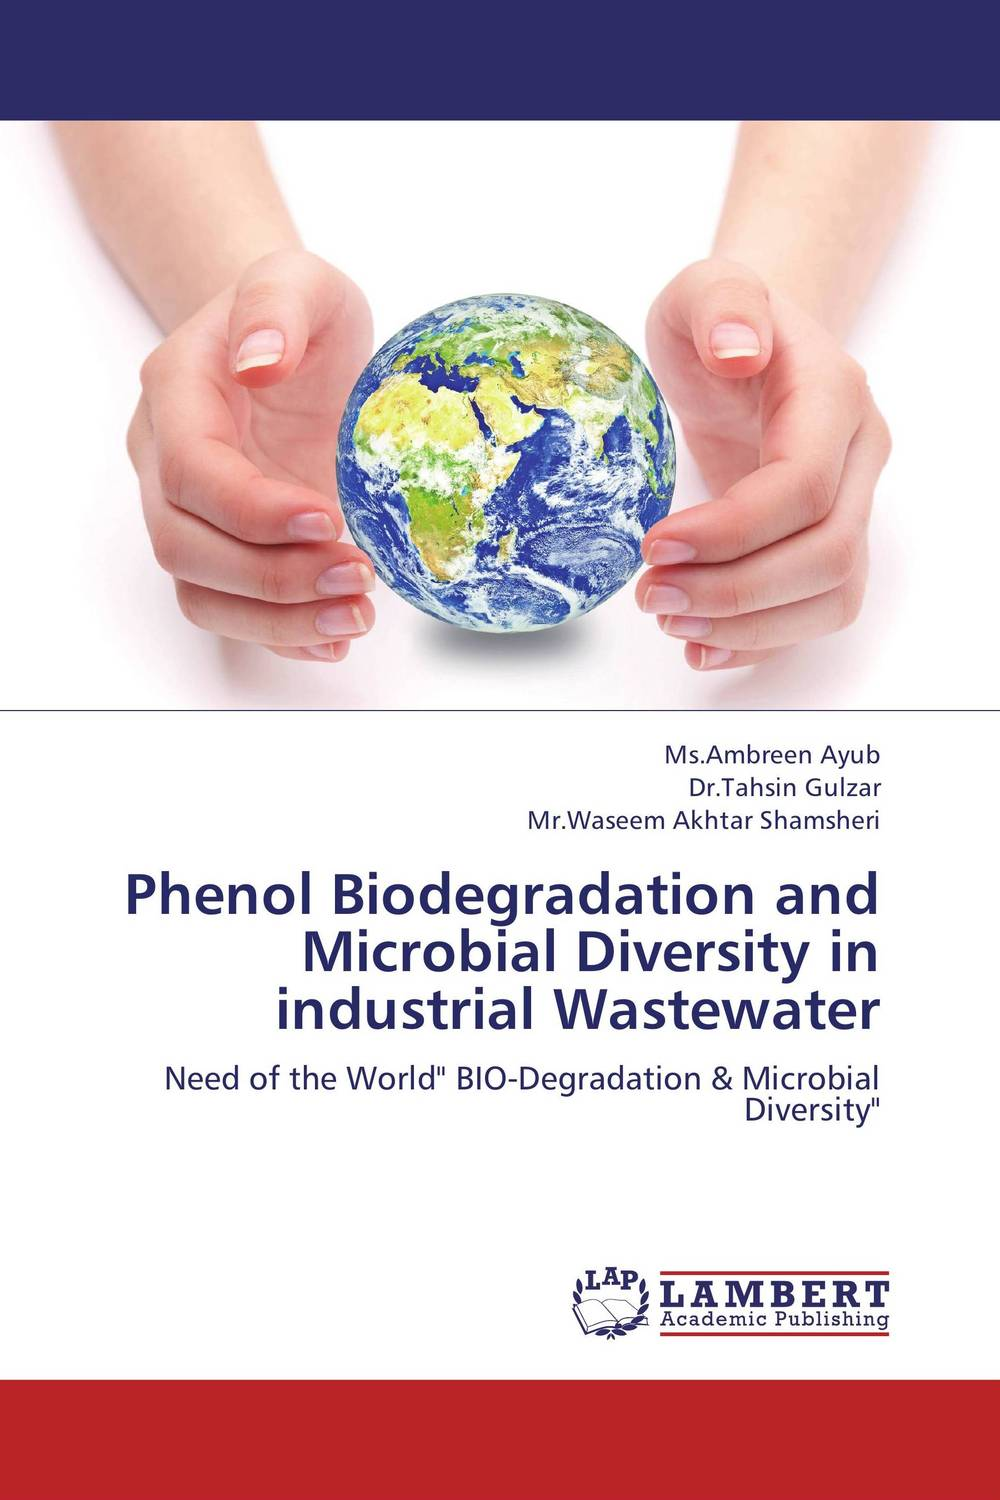 Phenol Biodegradation and Microbial Diversity in industrial Wastewater analysis of pharmaceuticals in wastewater and their photodegradation